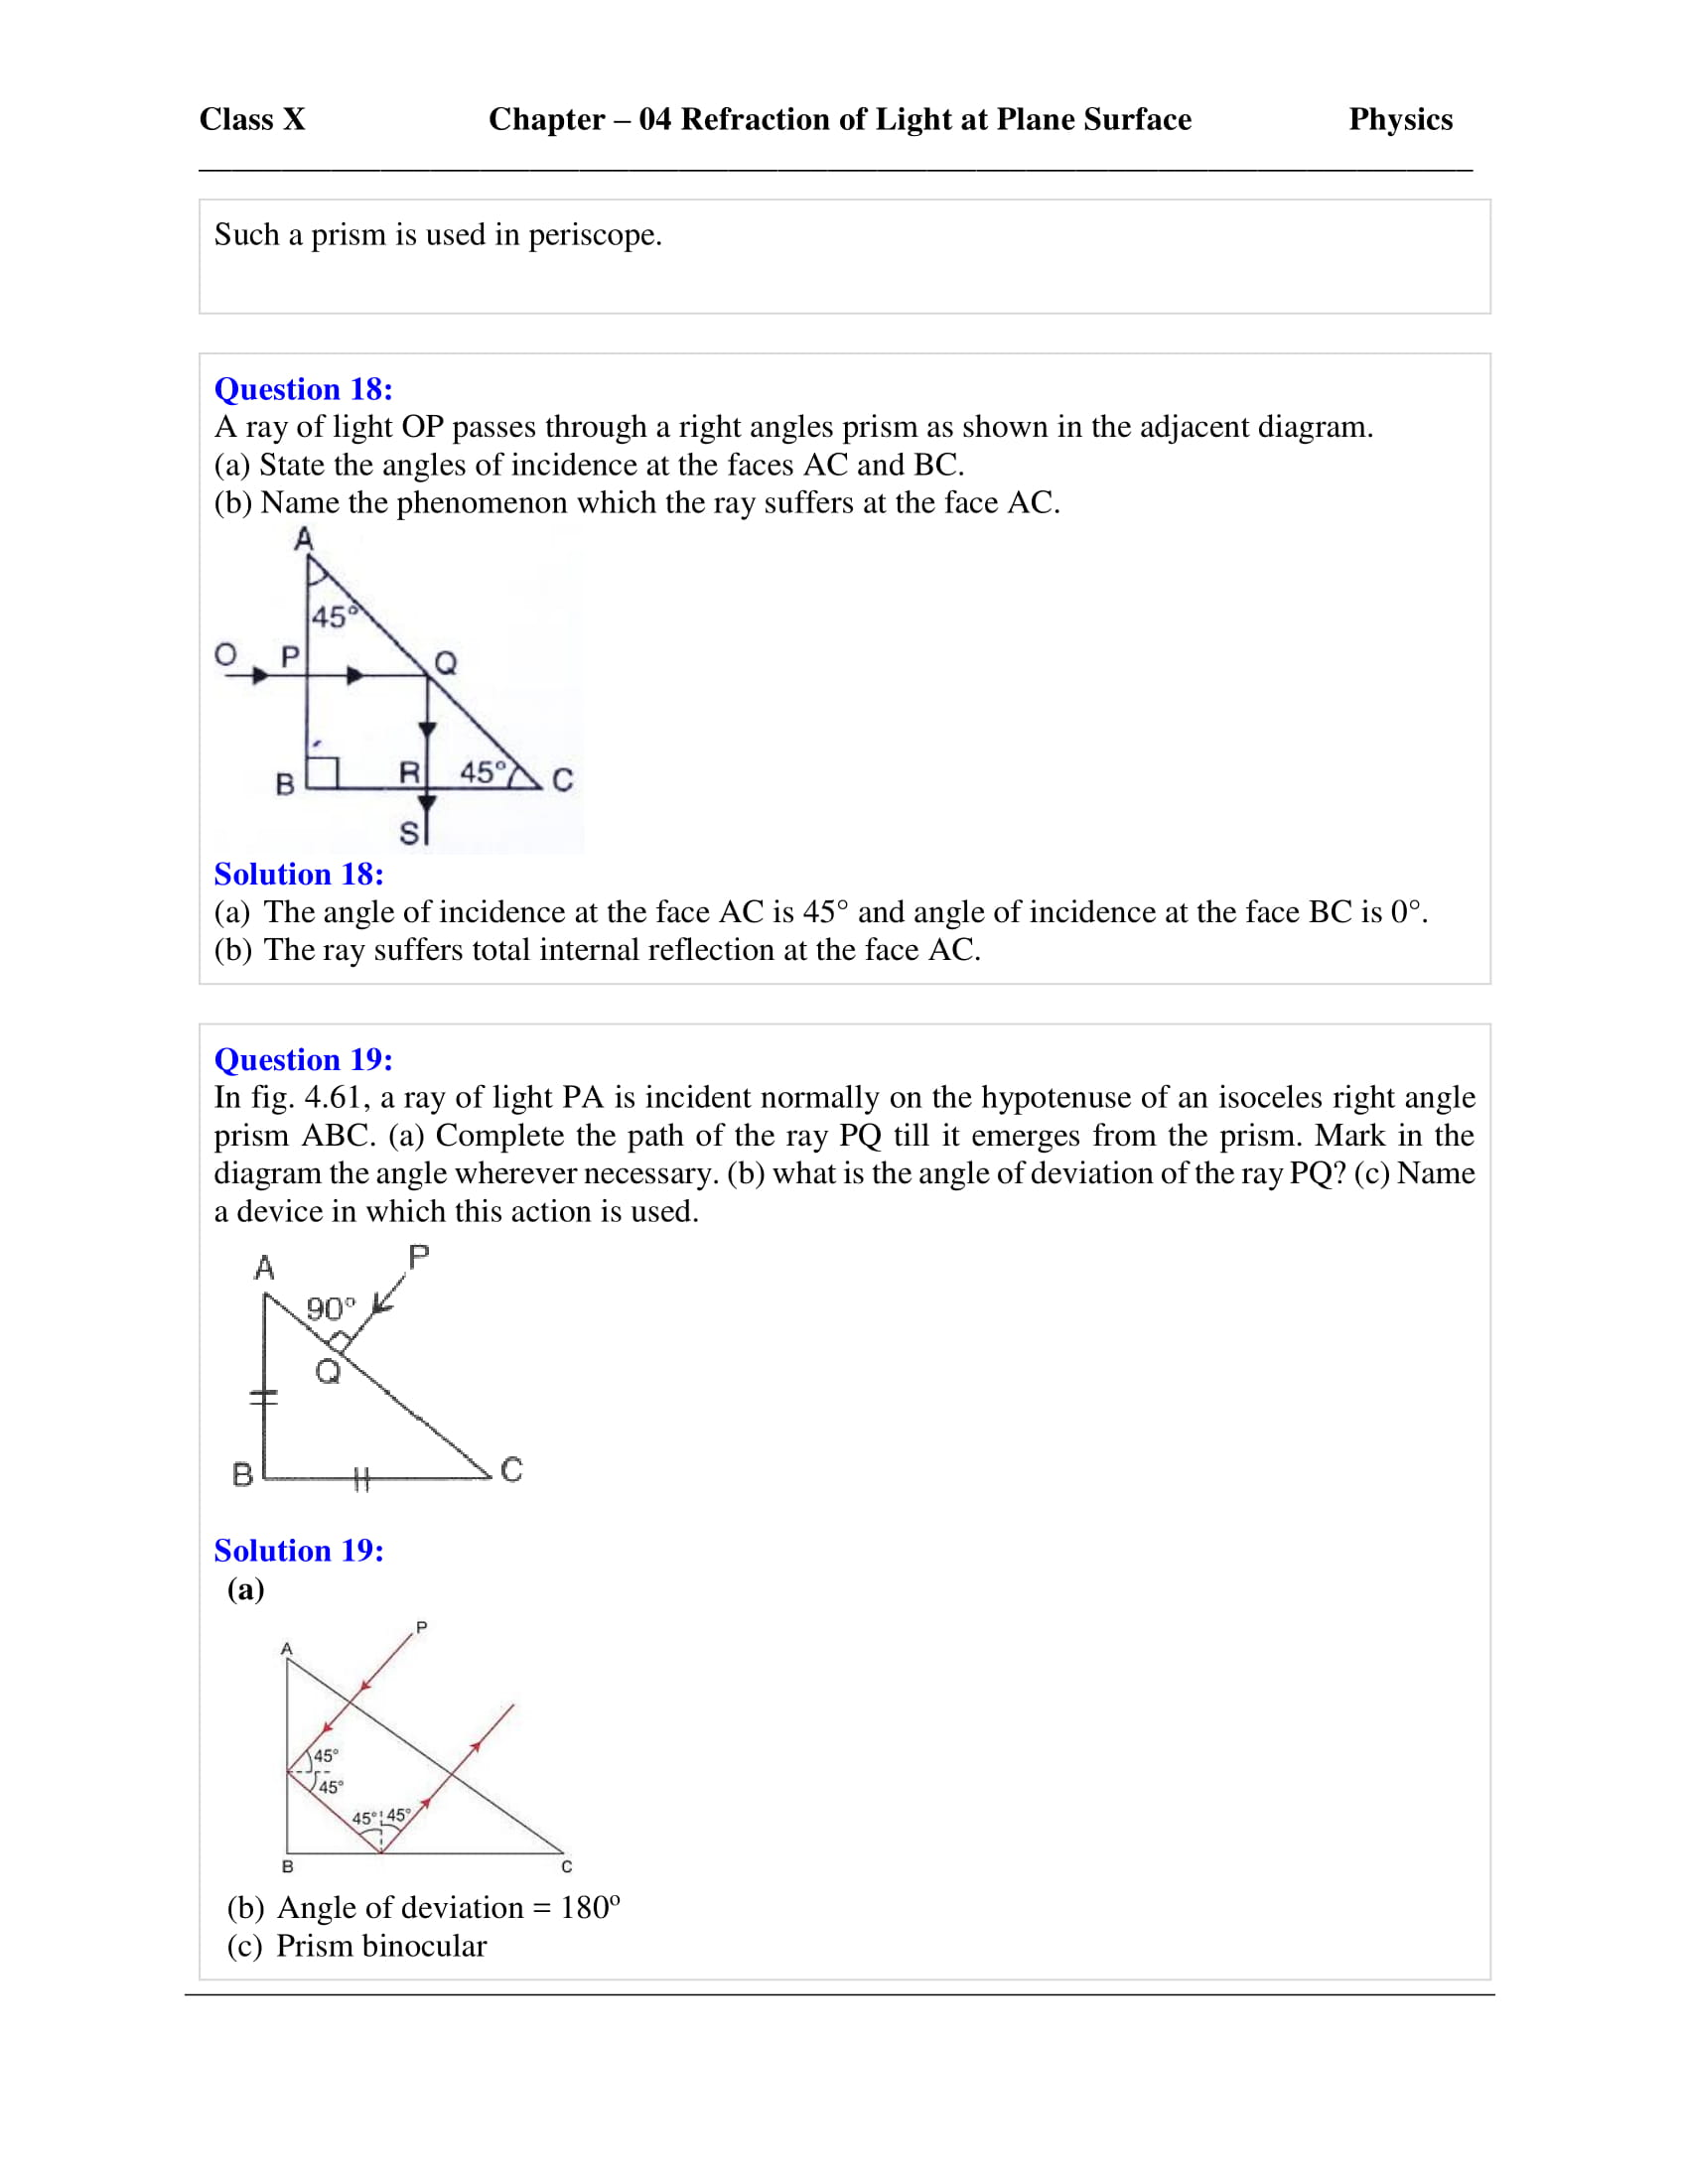 icse-selina-physics-solutions-class-10-chapter-4-refraction-of-light-at-plane-surfaces-35